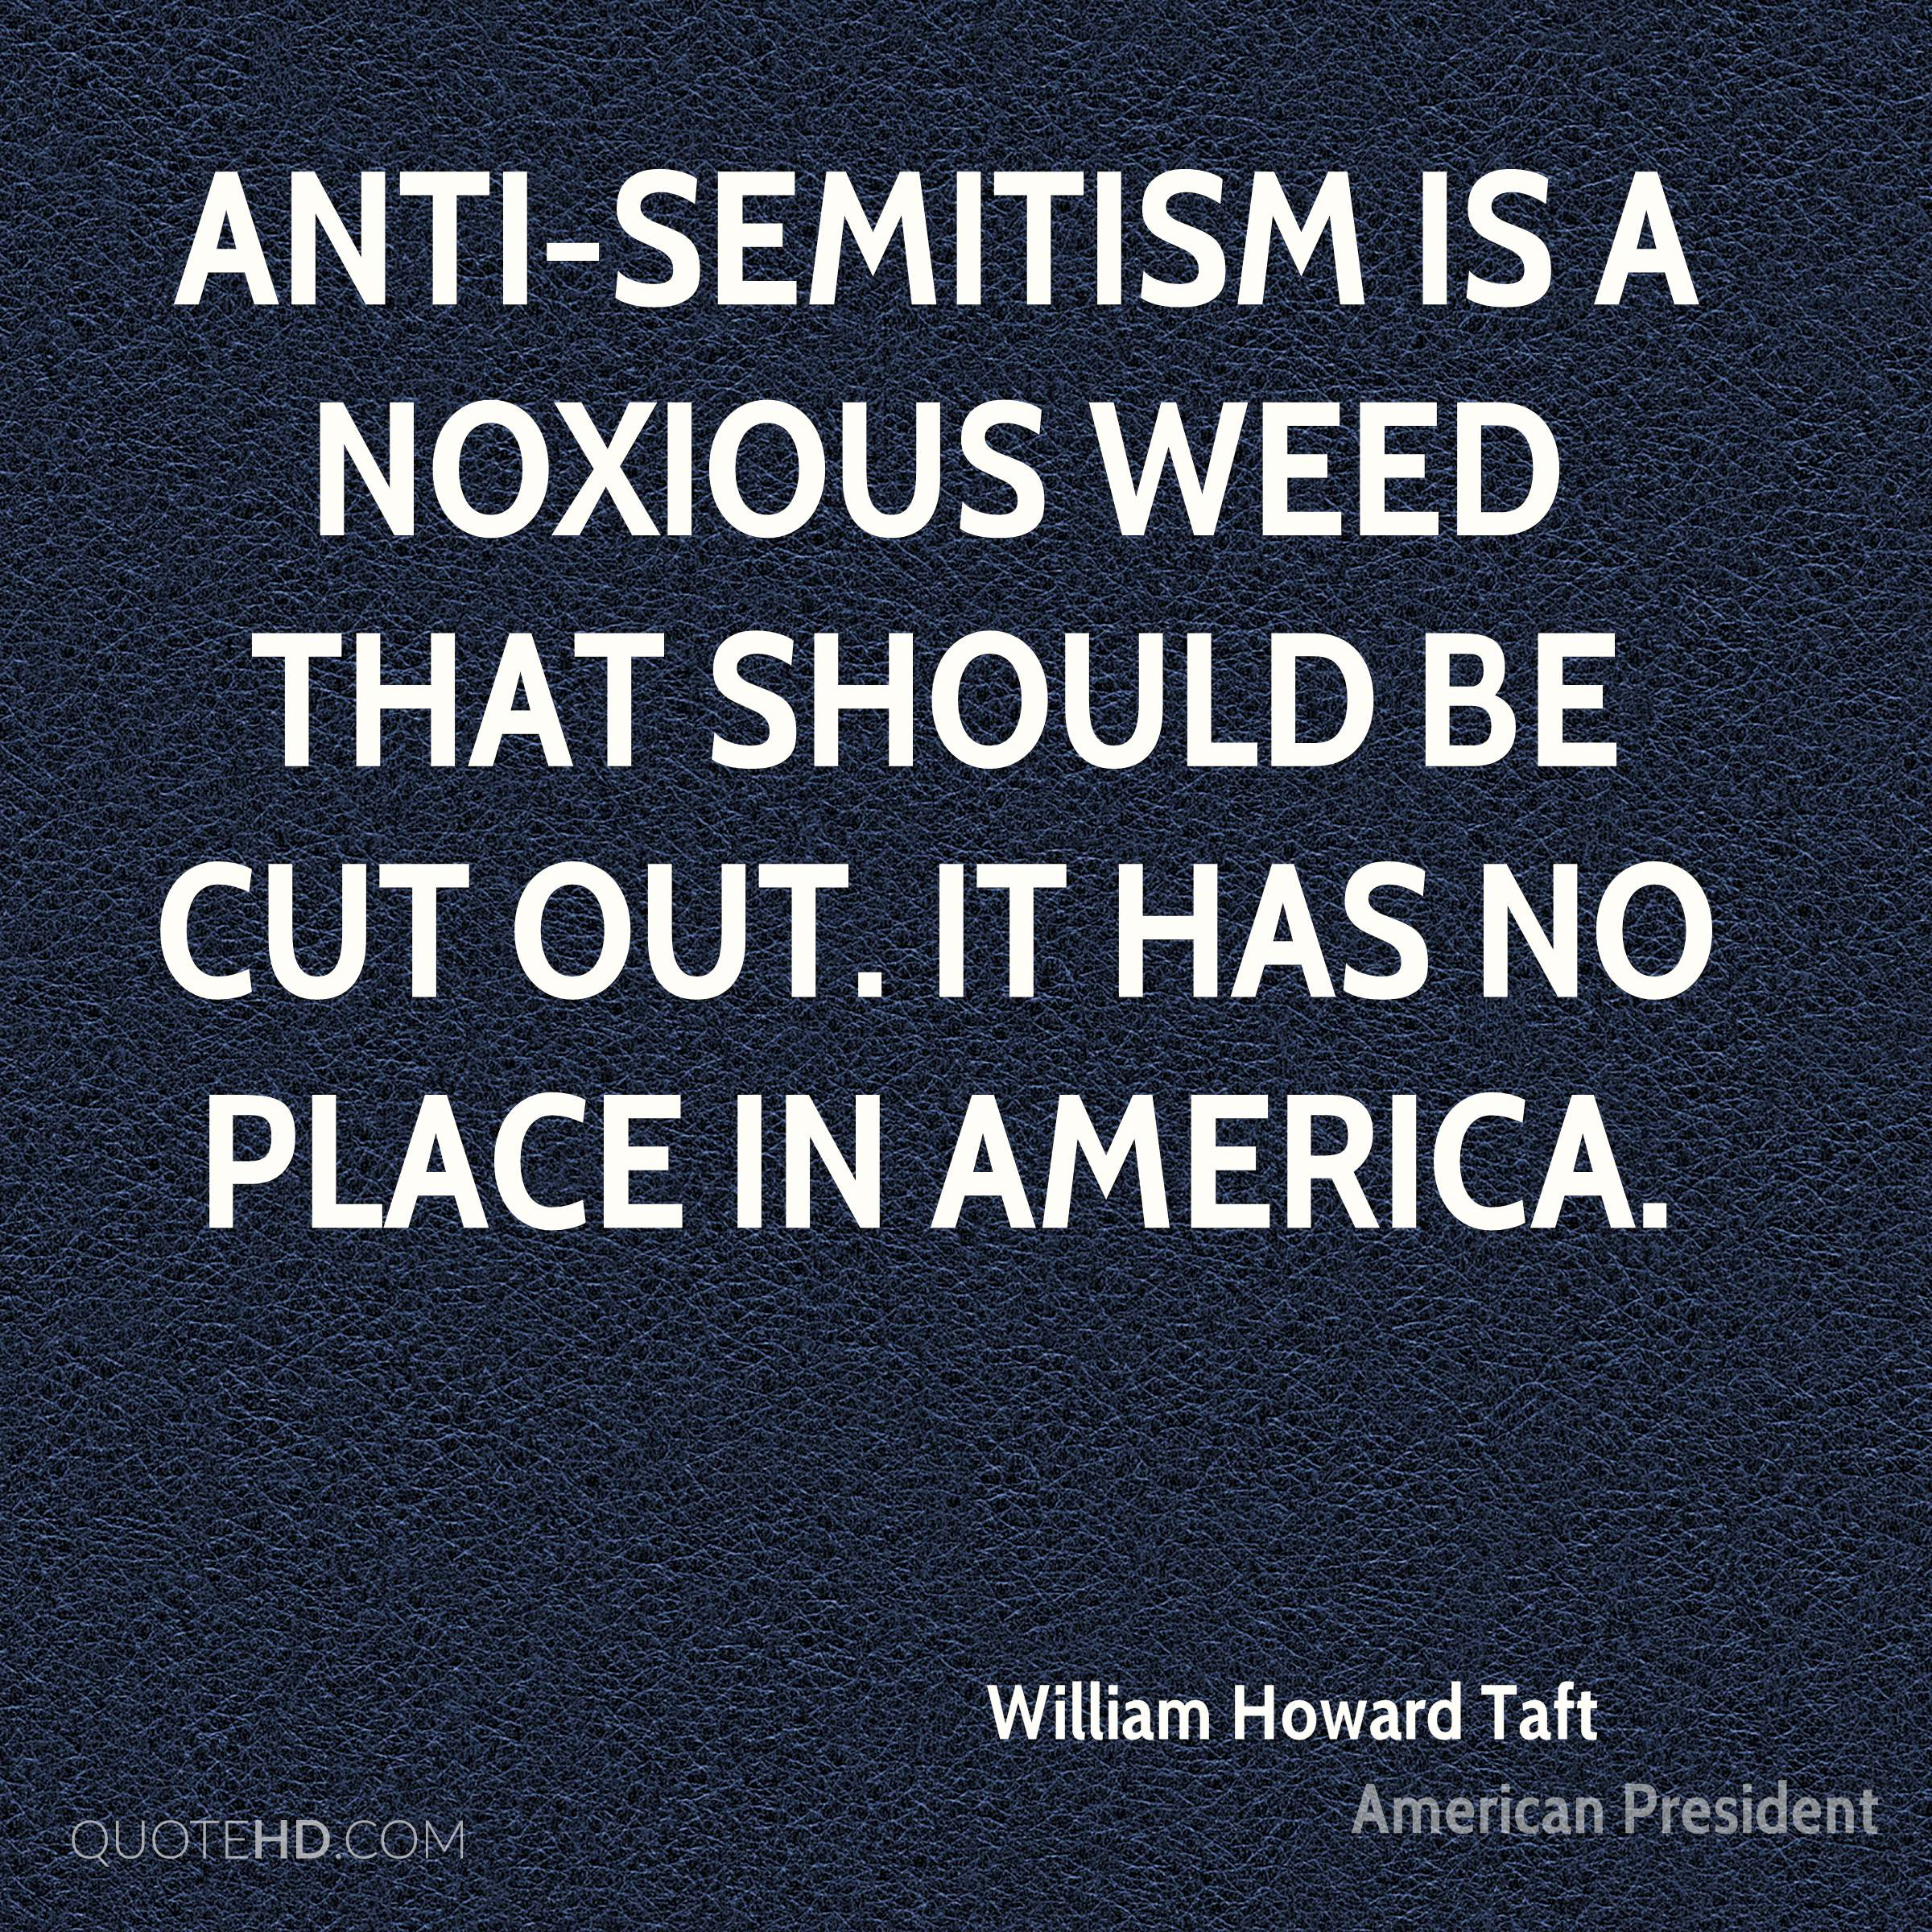 Anti-Semitism is a noxious weed that should be cut out. It has no place in America.